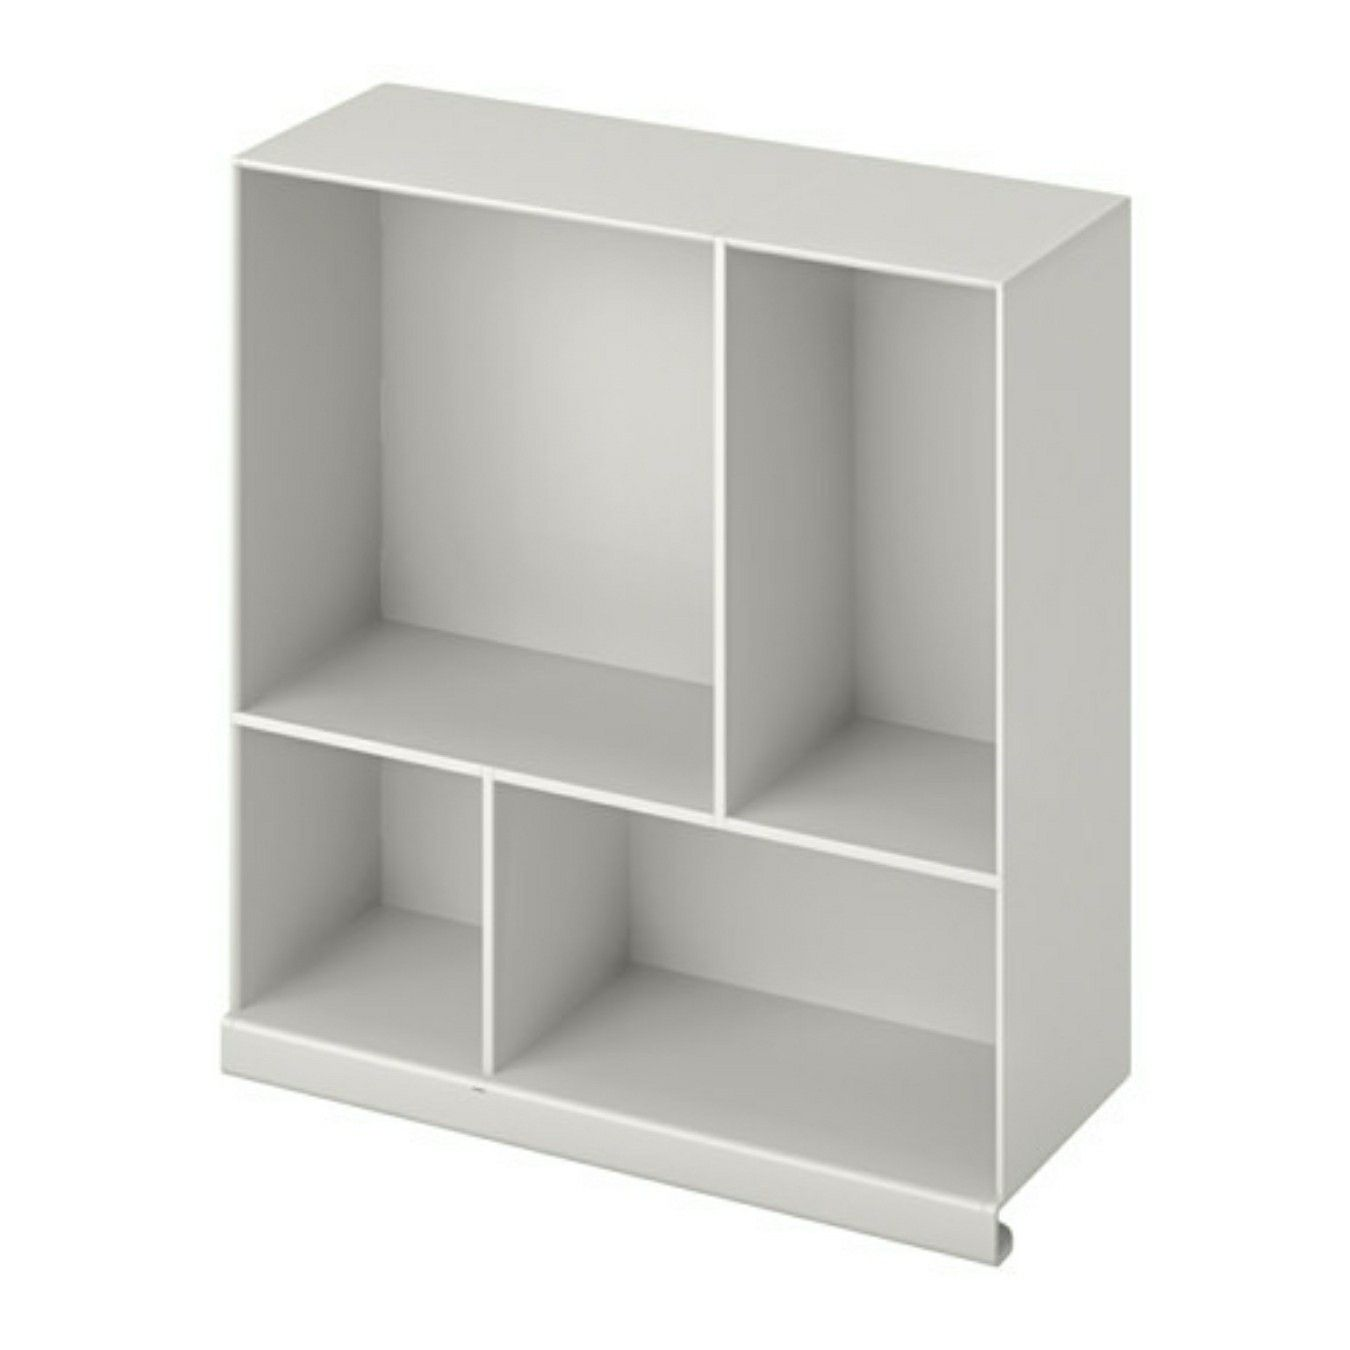 Kallax At Ikea Shelf Insert For The Home Pinterest Ikea  # Meuble Tv Ikea Kallax